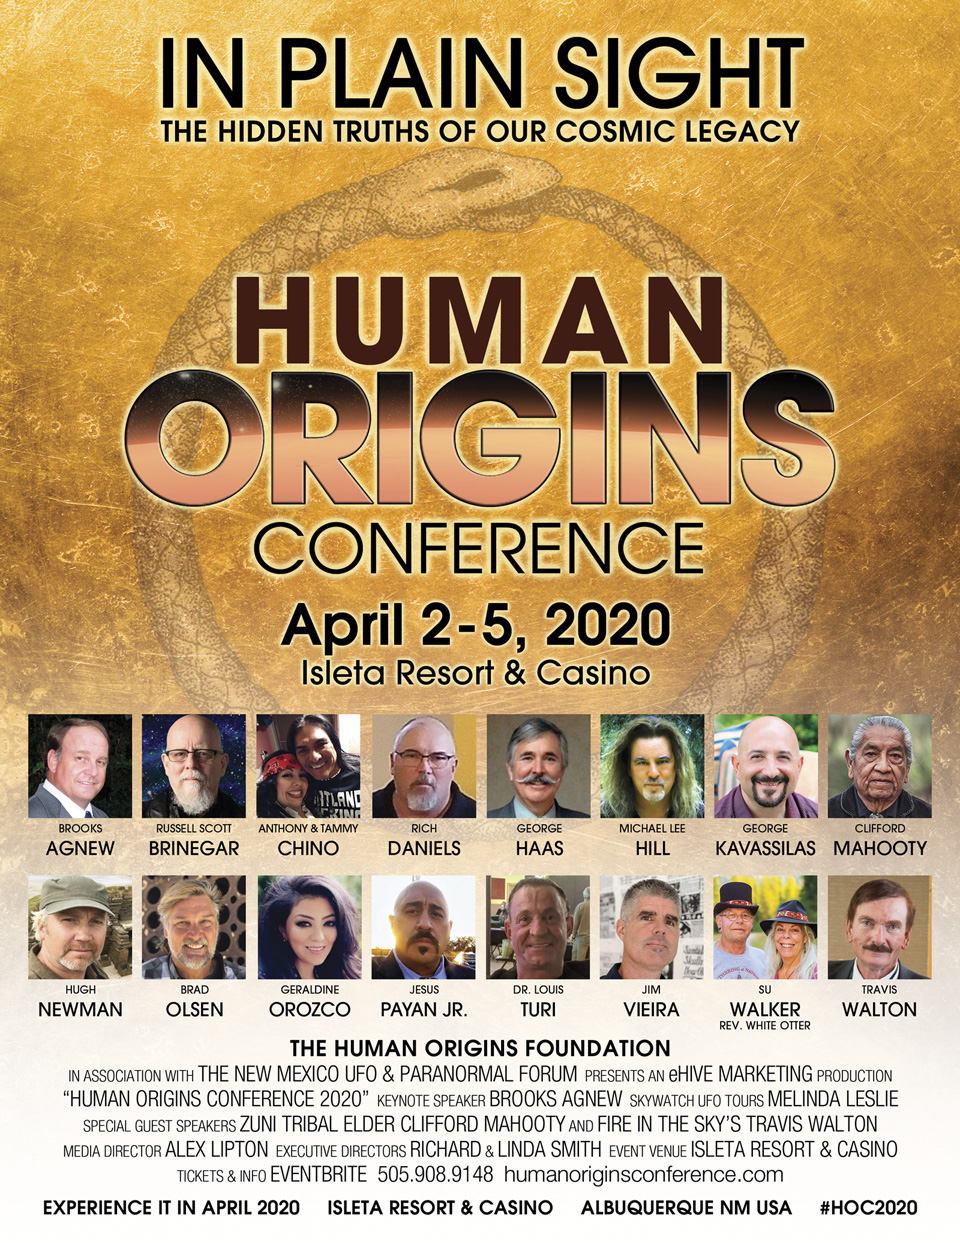 human origins conference 2020 official poster